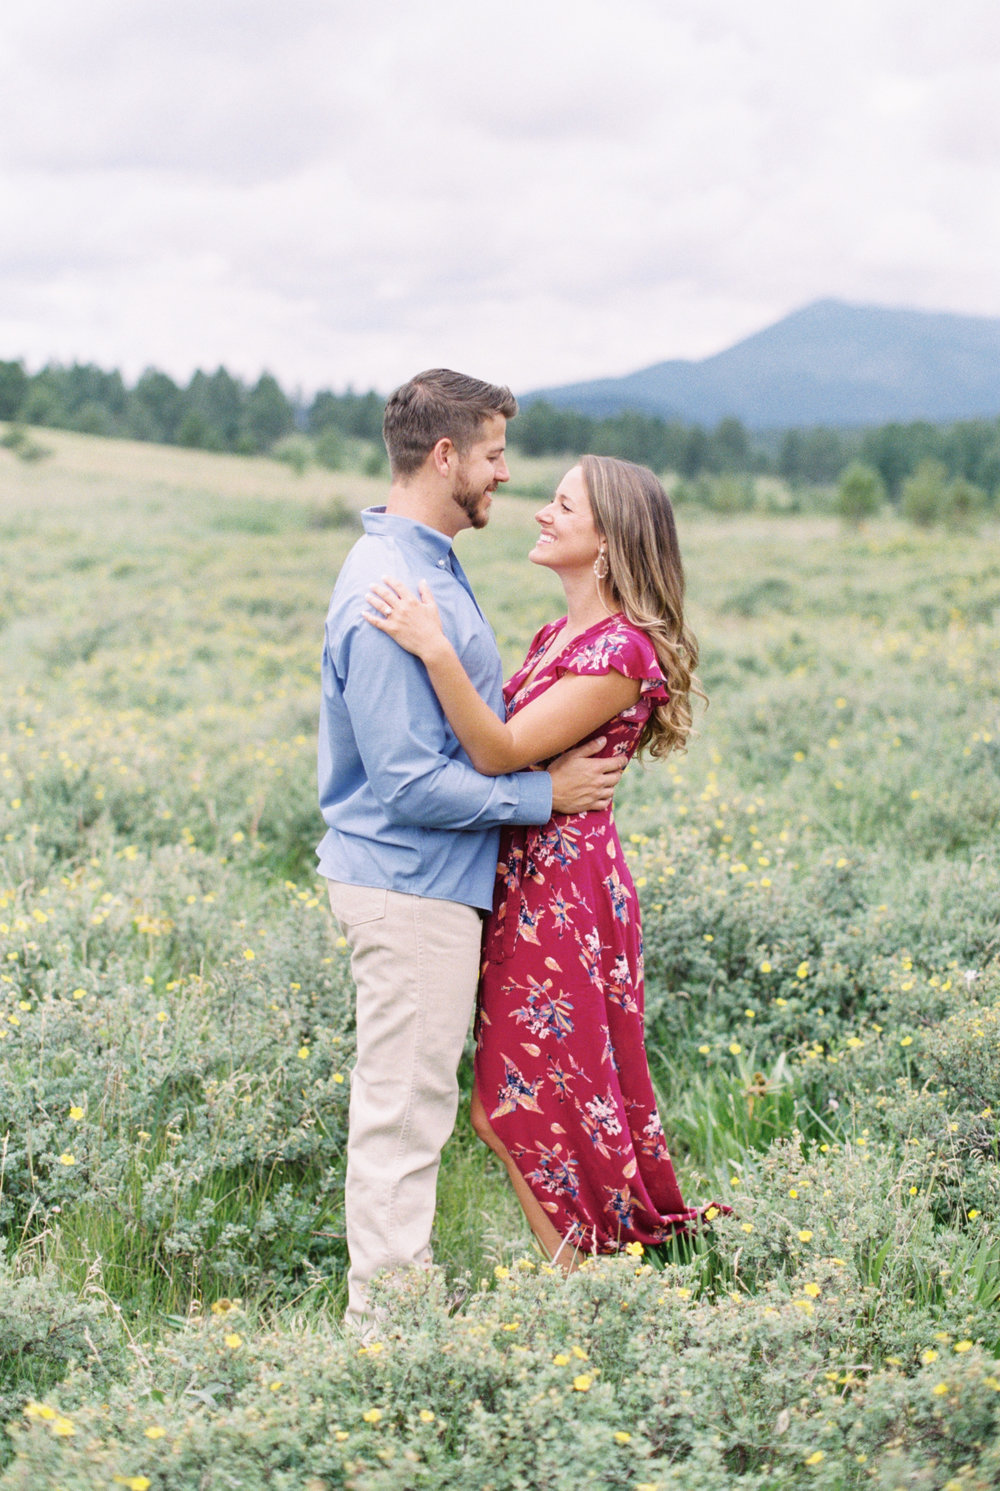 flagstaff-arizona-engagement-photographer-brealyn-nenes